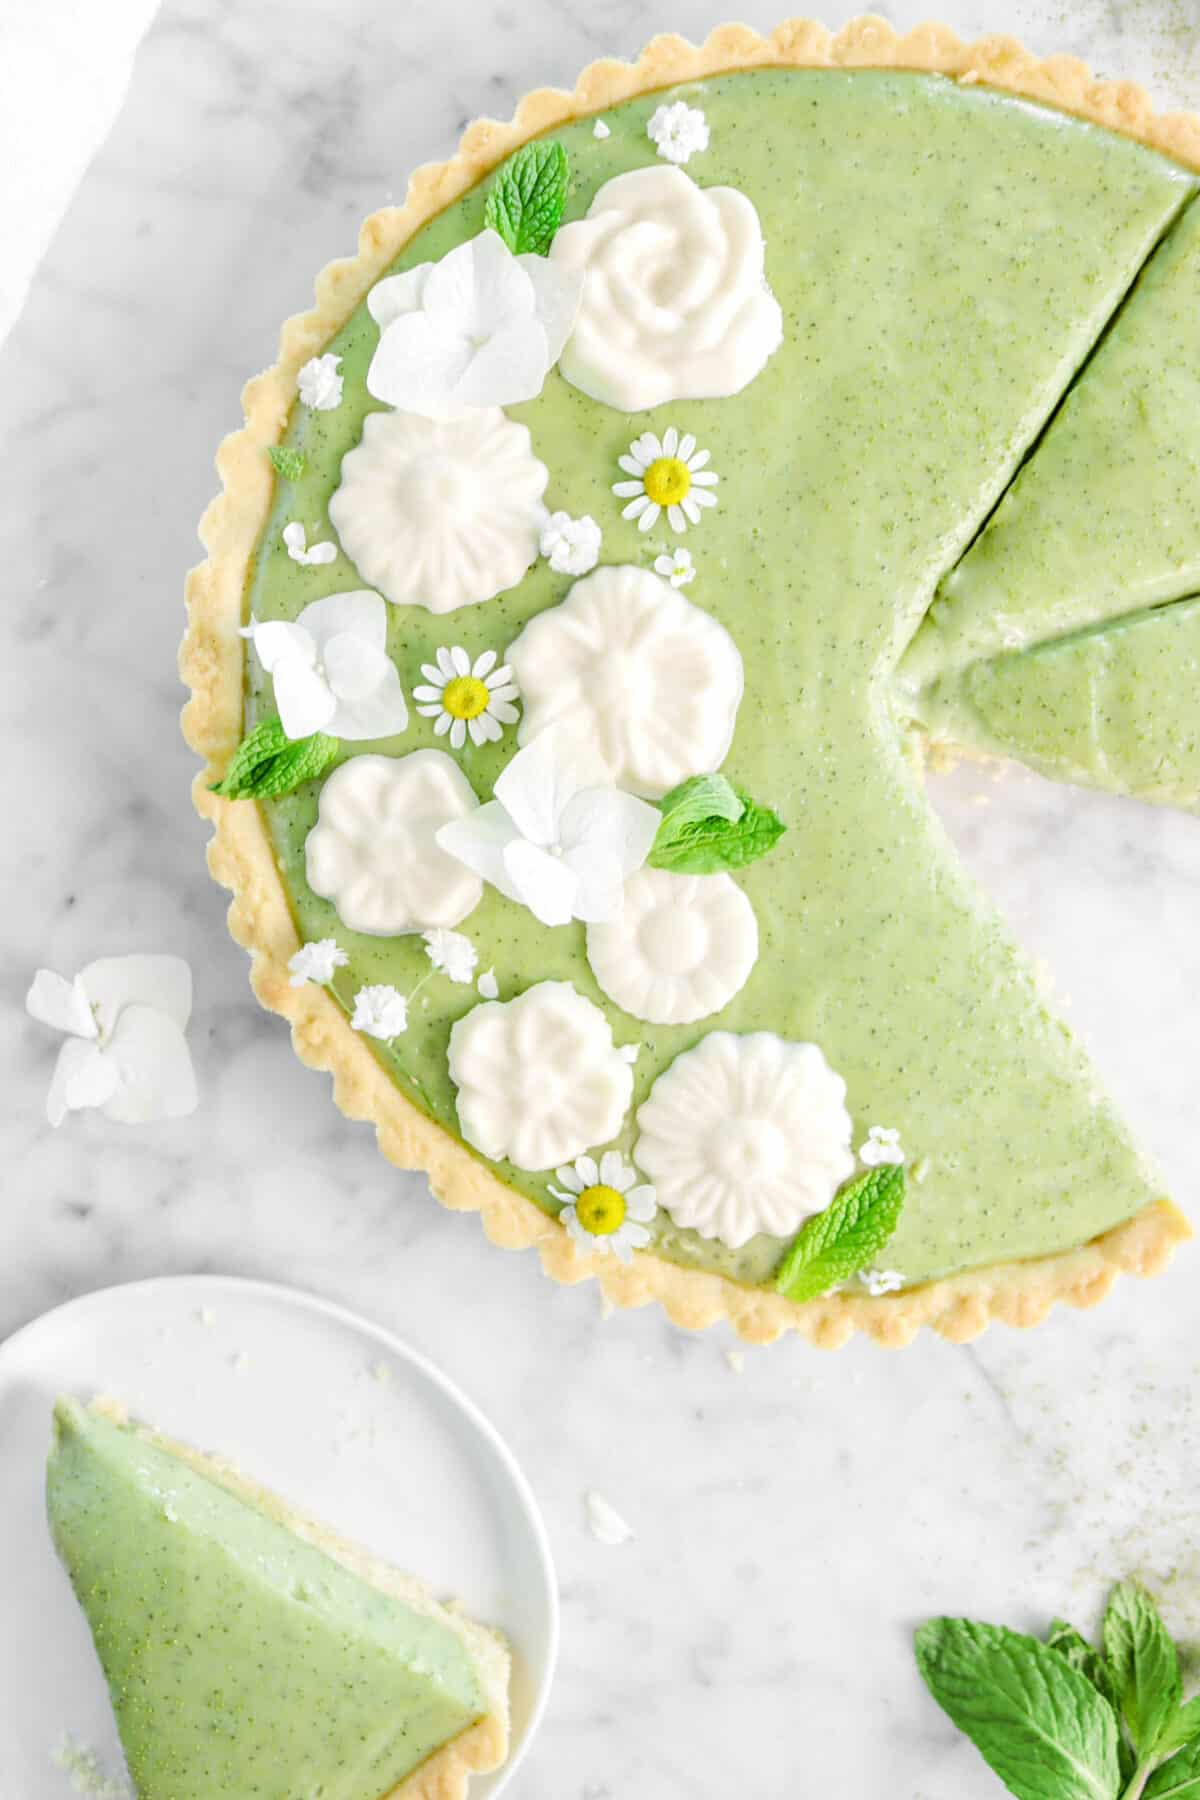 close up of matcha tart on marble counter with a slice on a white palte with white chocolate flowers, fresh flowers, and minut leaves